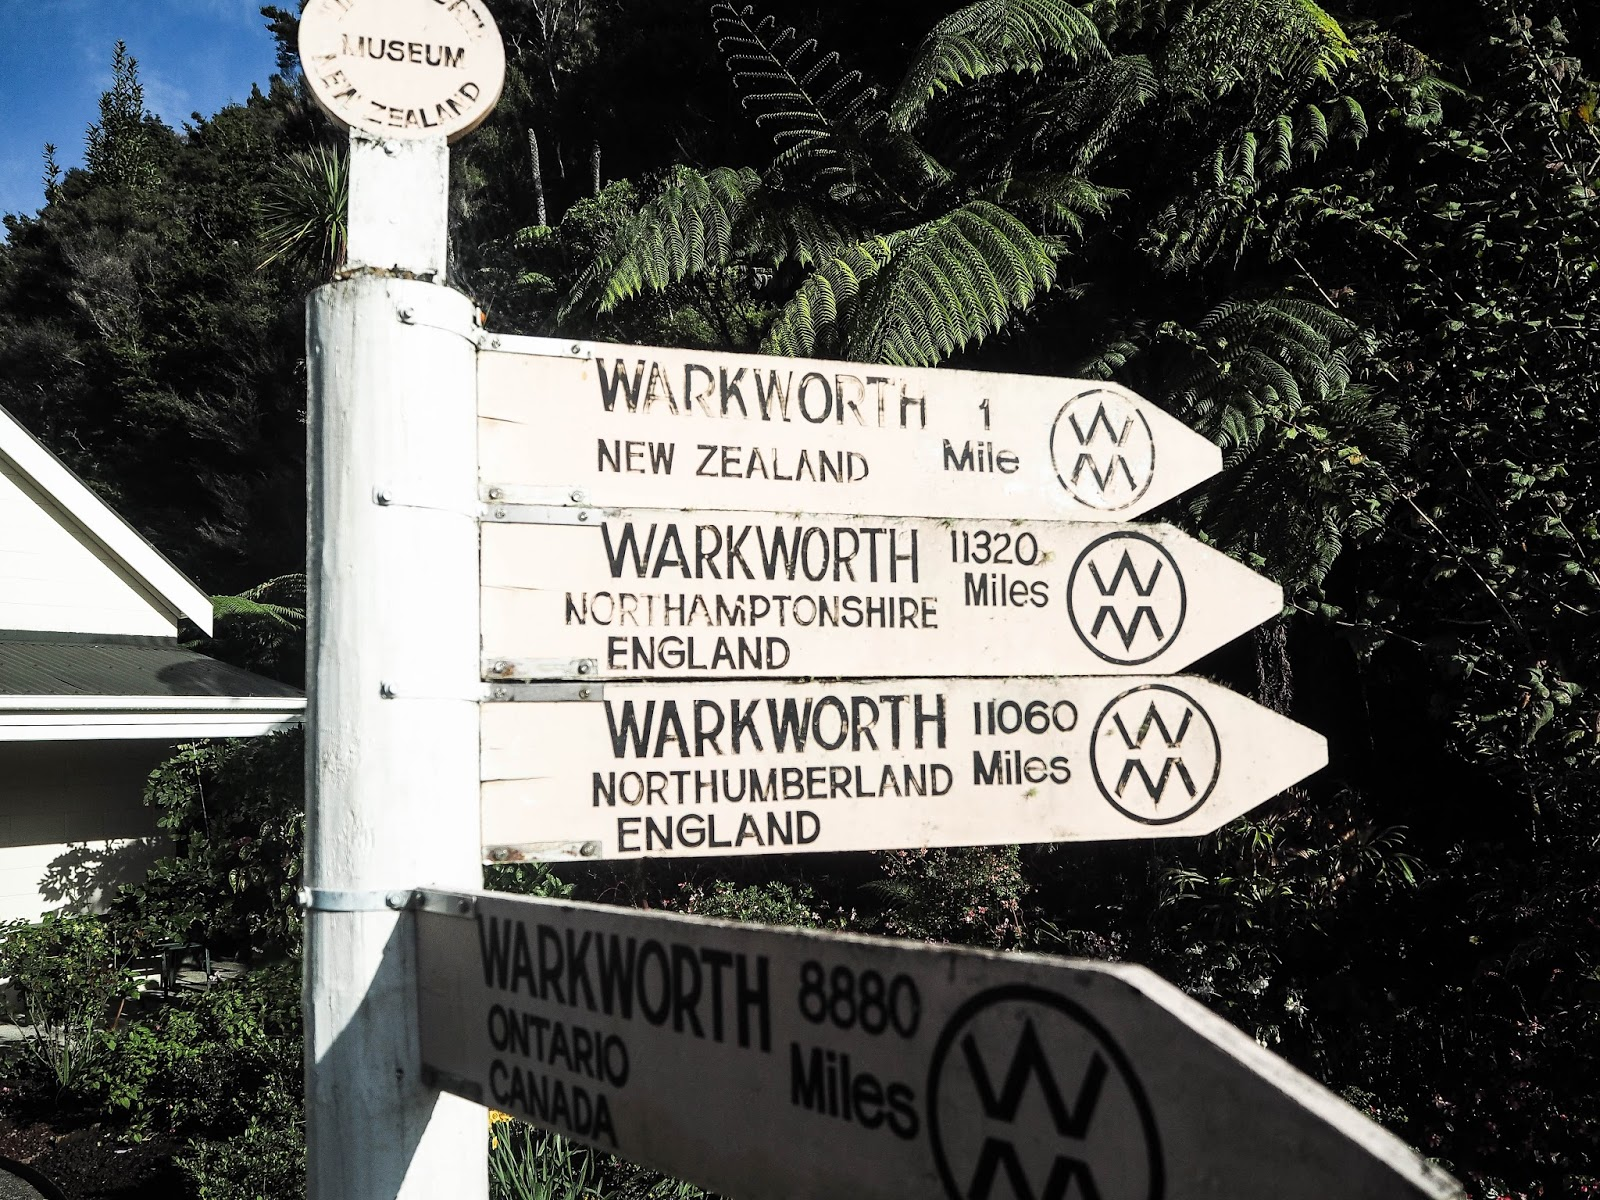 Warkworth sign, New Zealand